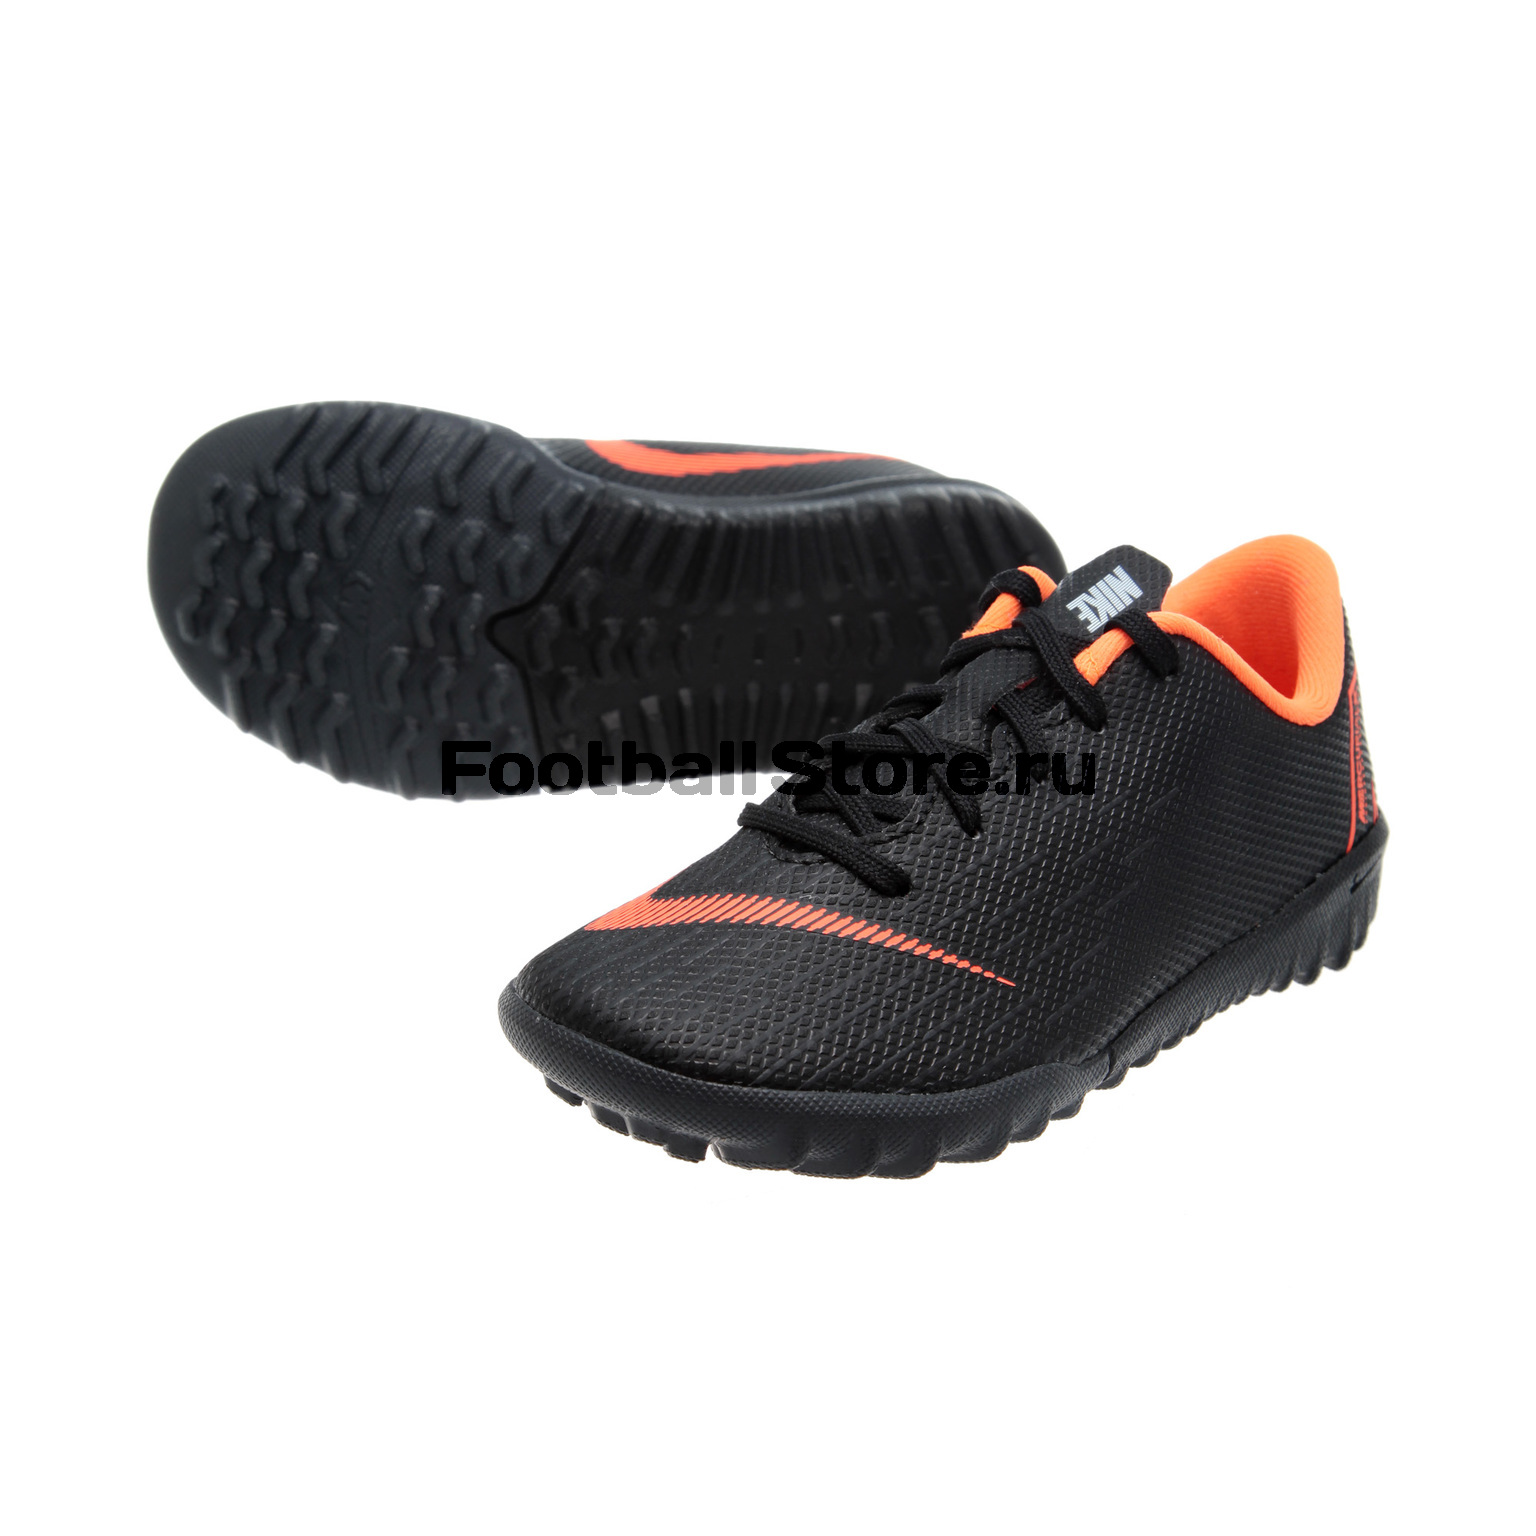 Шиповки Nike JR VaporX 12 Academy PS TF AH7353-081 бутсы nike phantom 3 academy ag pro ah8845 081